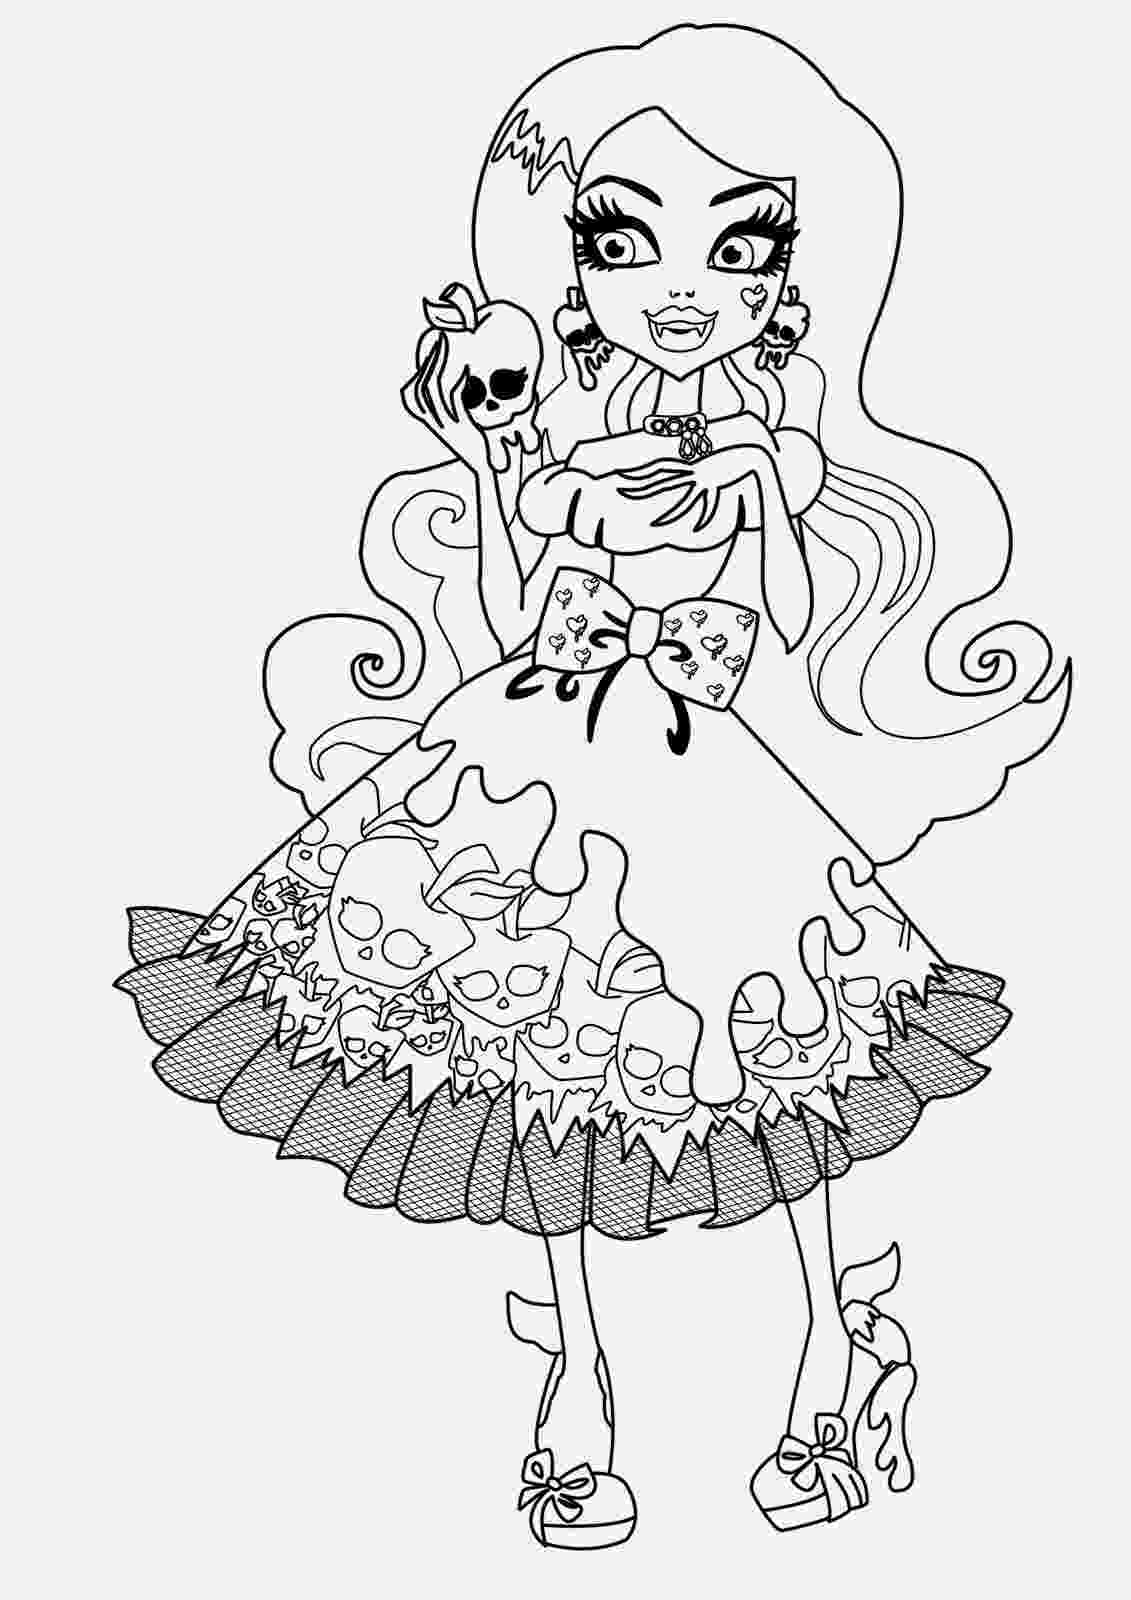 monster high printable coloring pages coloring pages monster high coloring pages free and printable pages monster coloring printable high